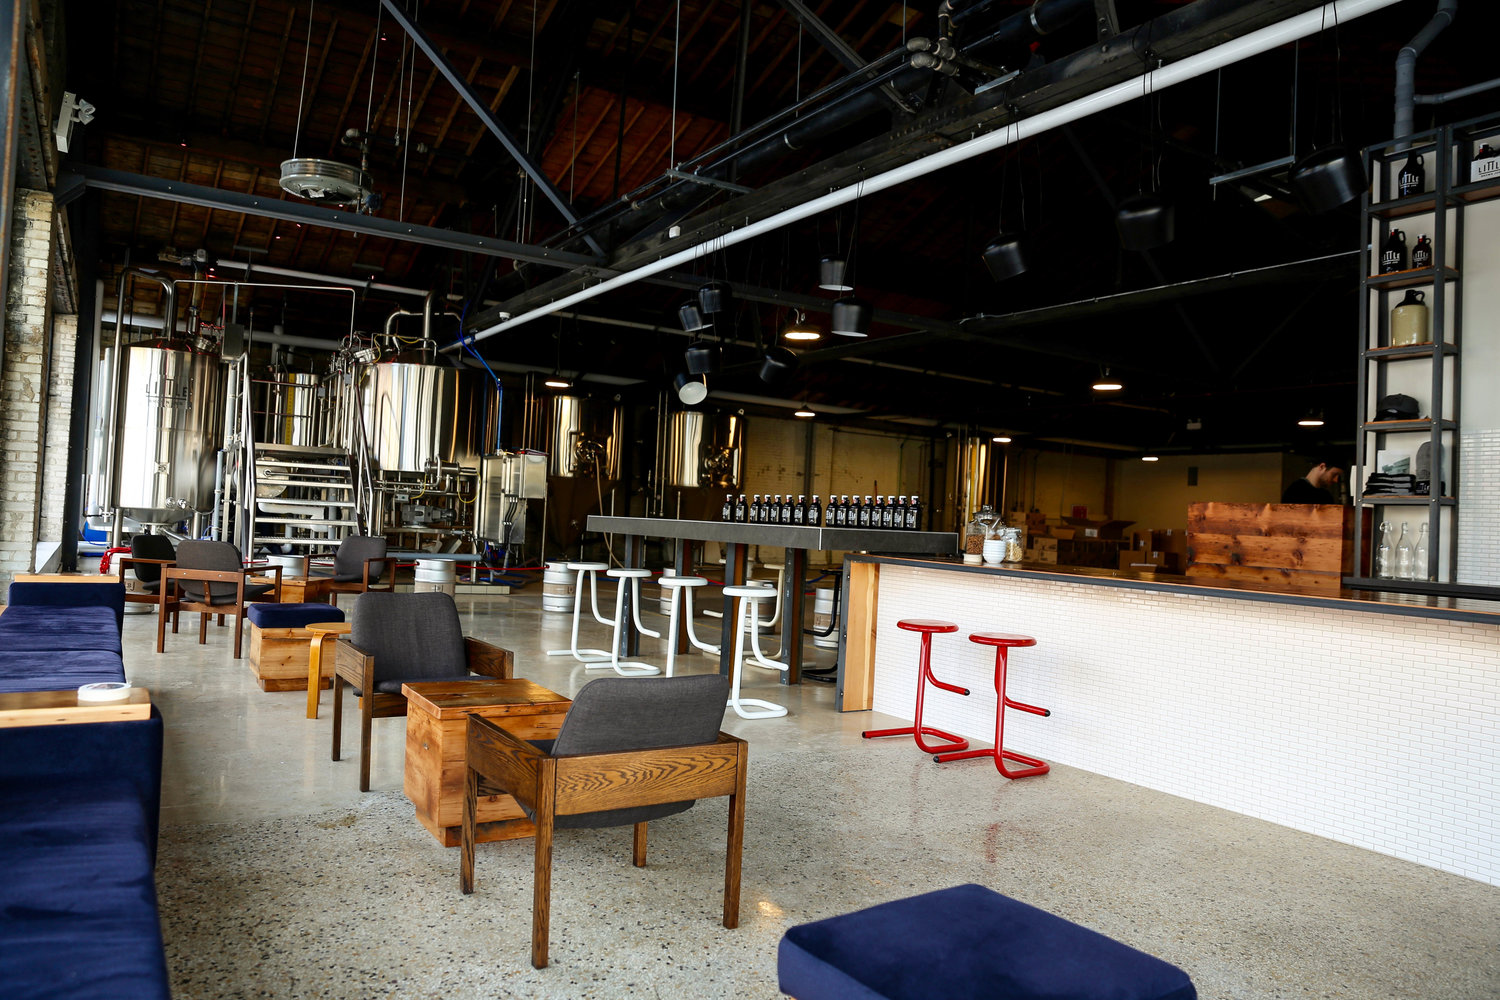 Congrats to one of our faves littlebrownjugbrewing for letting us be your design girls to prairiearchitects for bringing on to work on the tap room